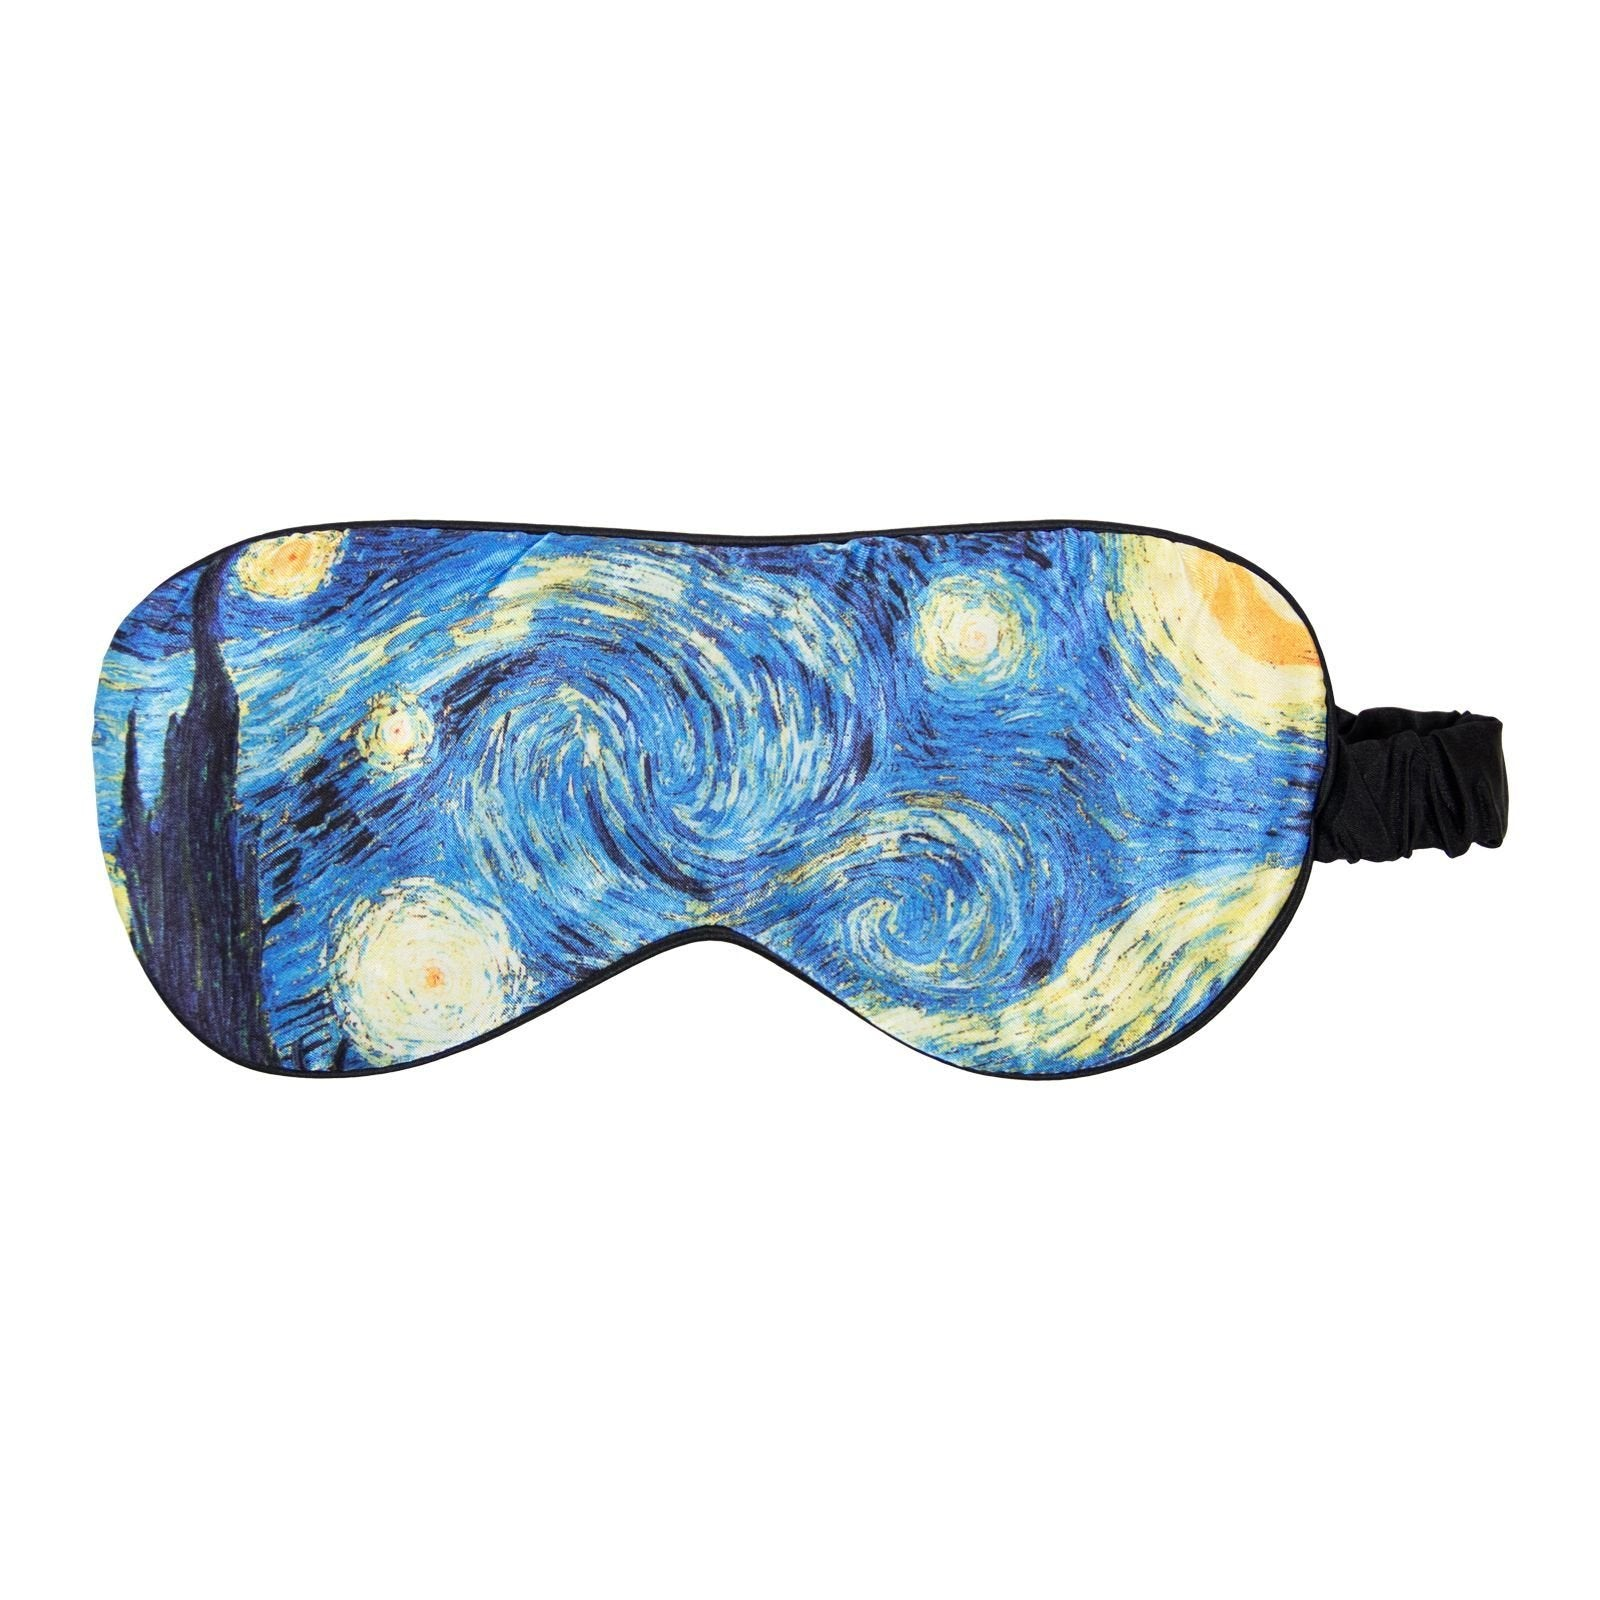 SLEEP MASK-STARRY NIGHTS - Molly's! A Chic and Unique Boutique